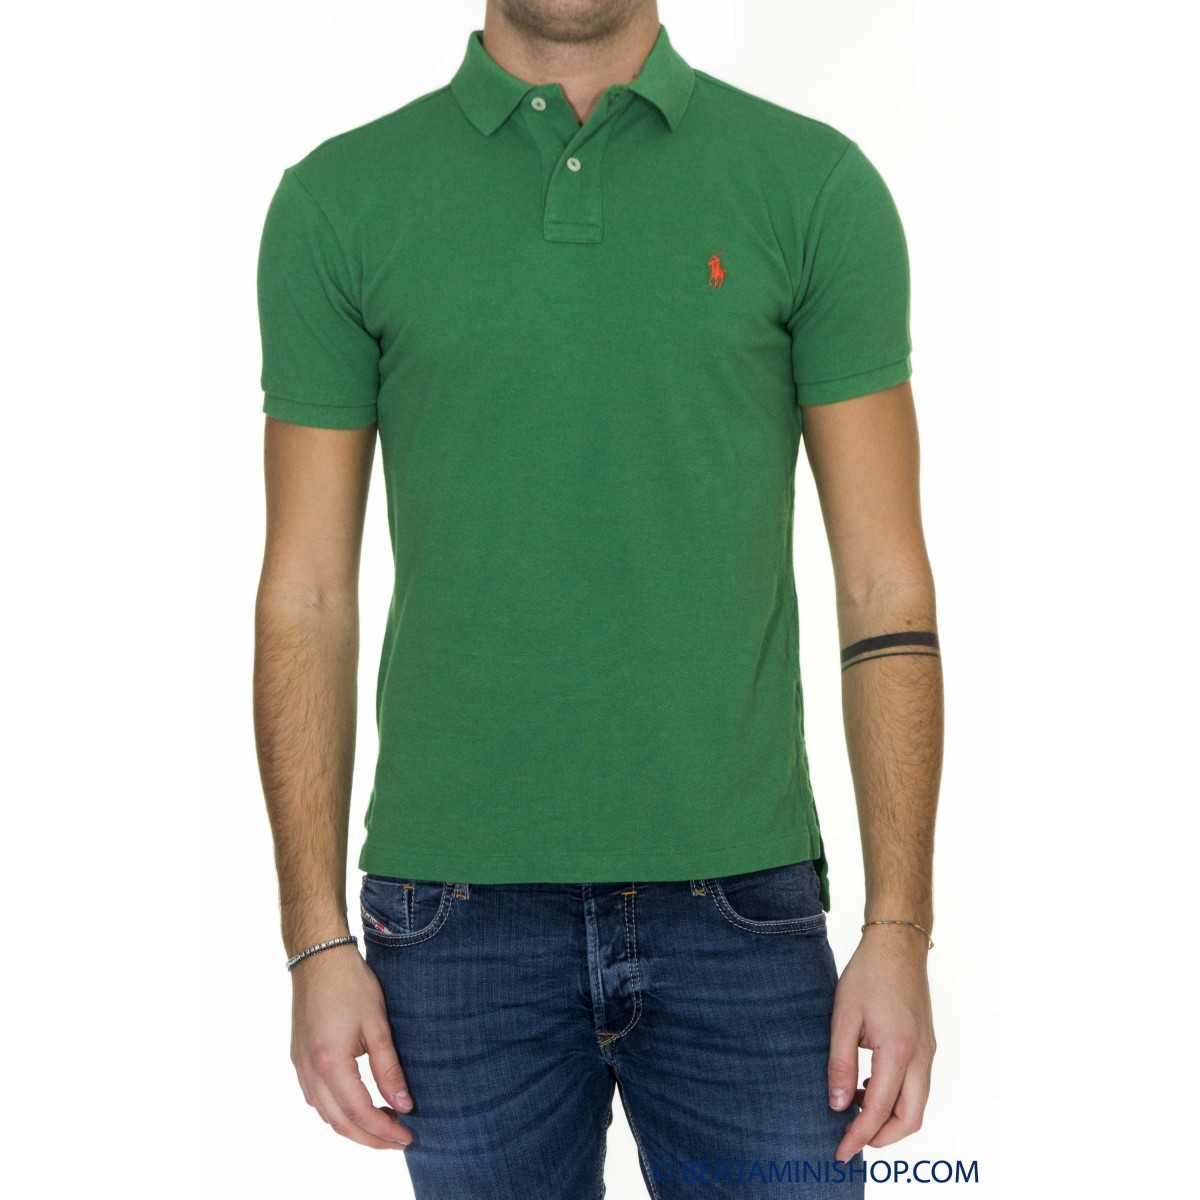 Polo Ralph Lauren Manner - A12Ks01Cc0004 A33NG - Verde melange